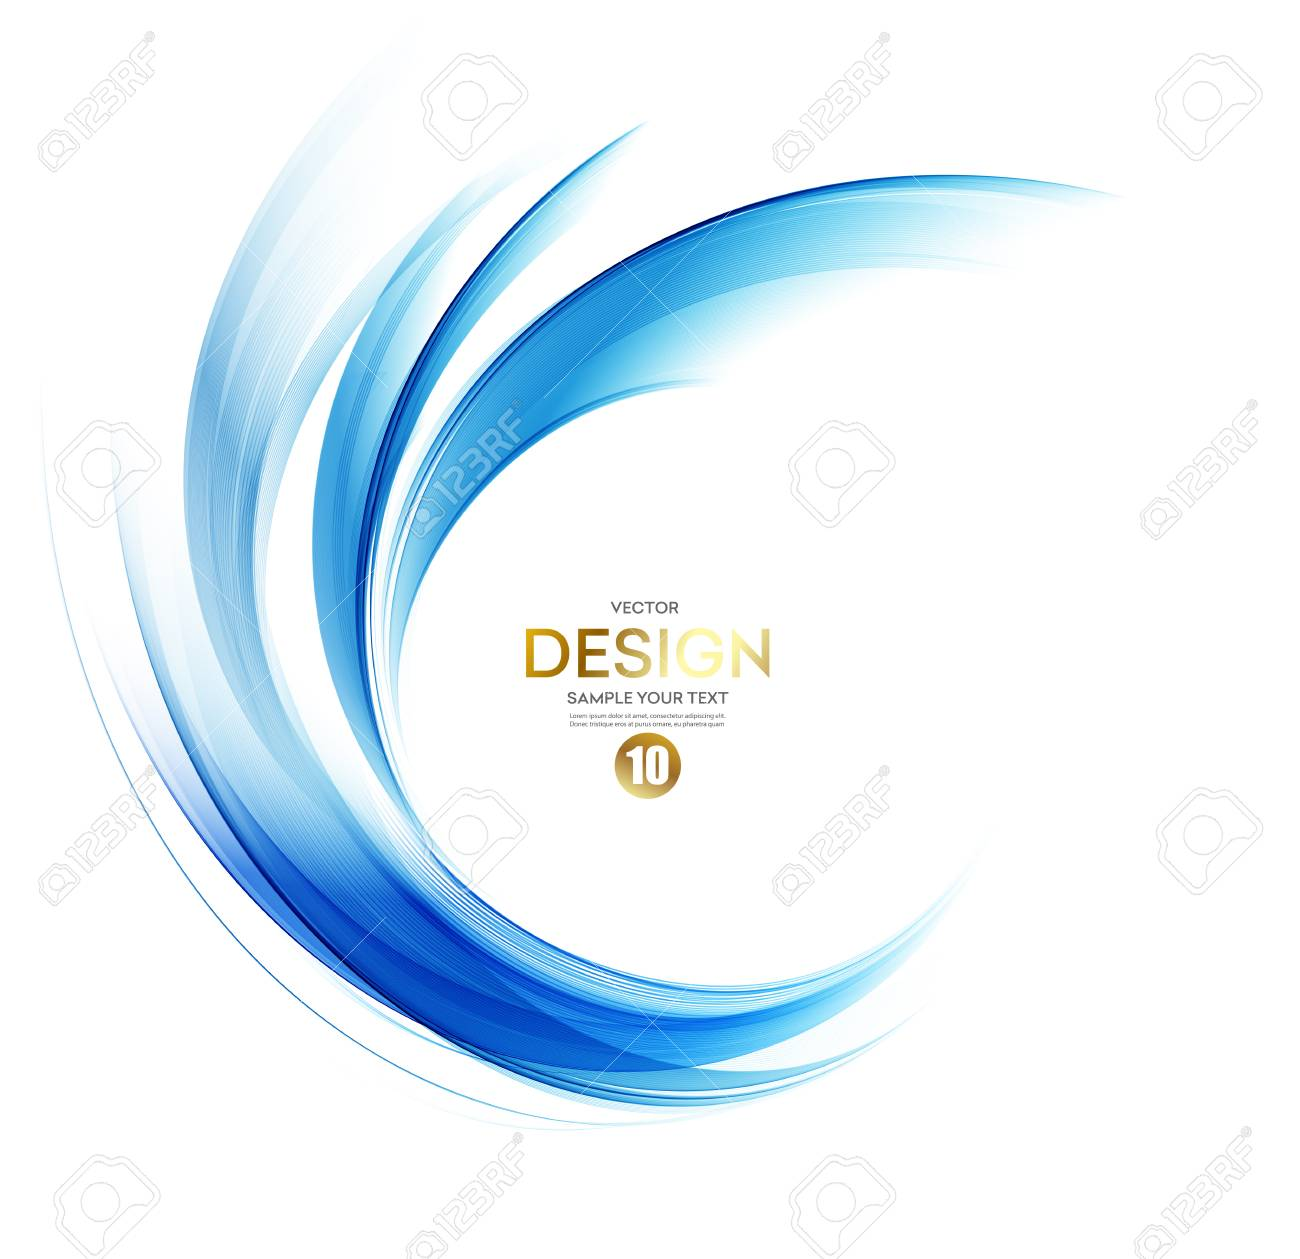 Abstract vector background, blue wavy - 87521299